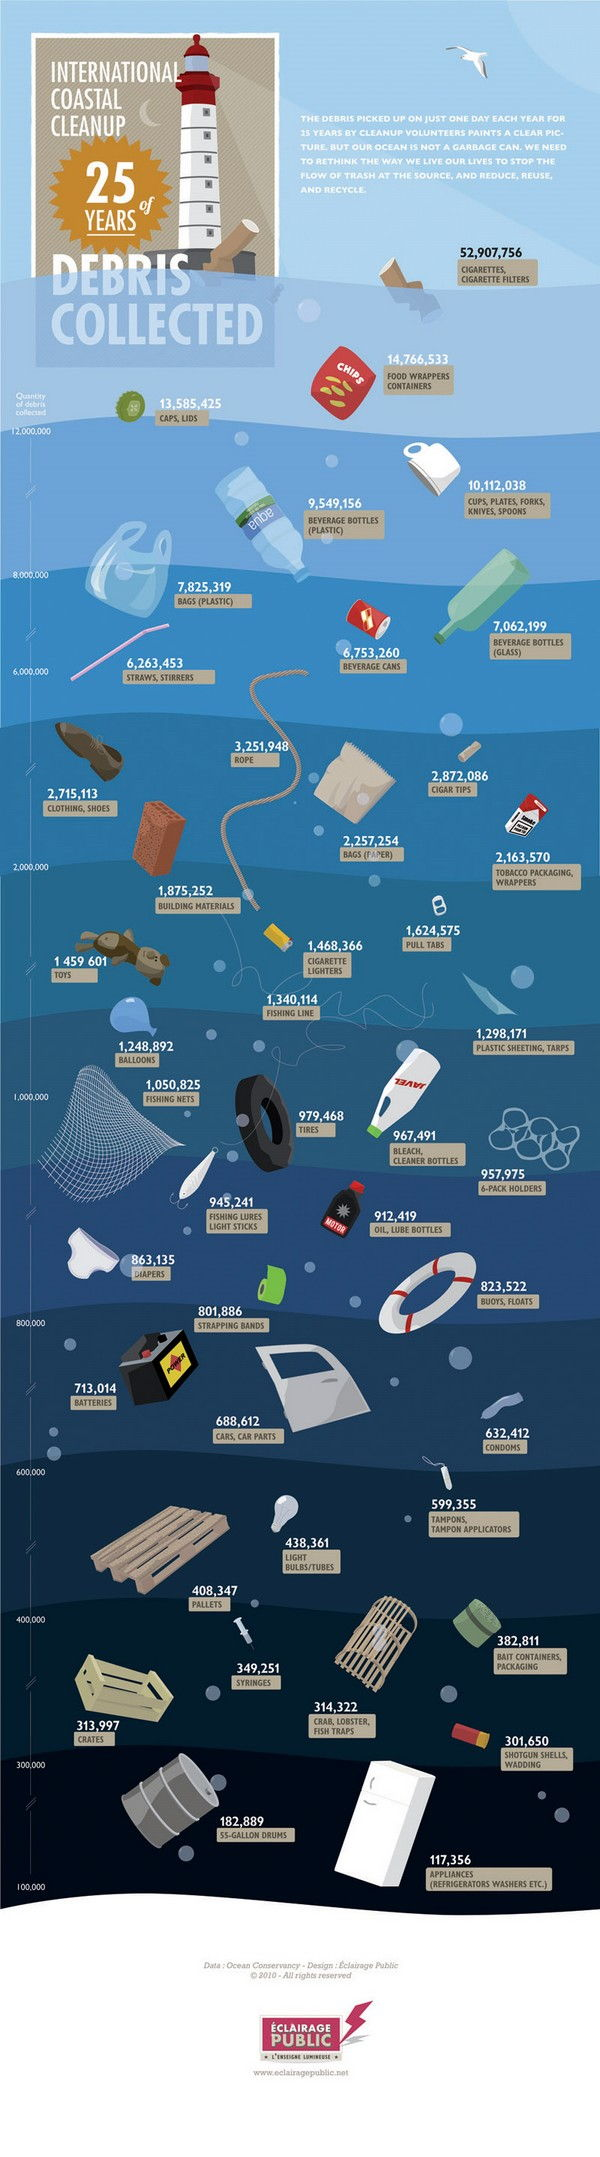 International Coastal Cleanup 25 years of Debris Collected [Infographic]